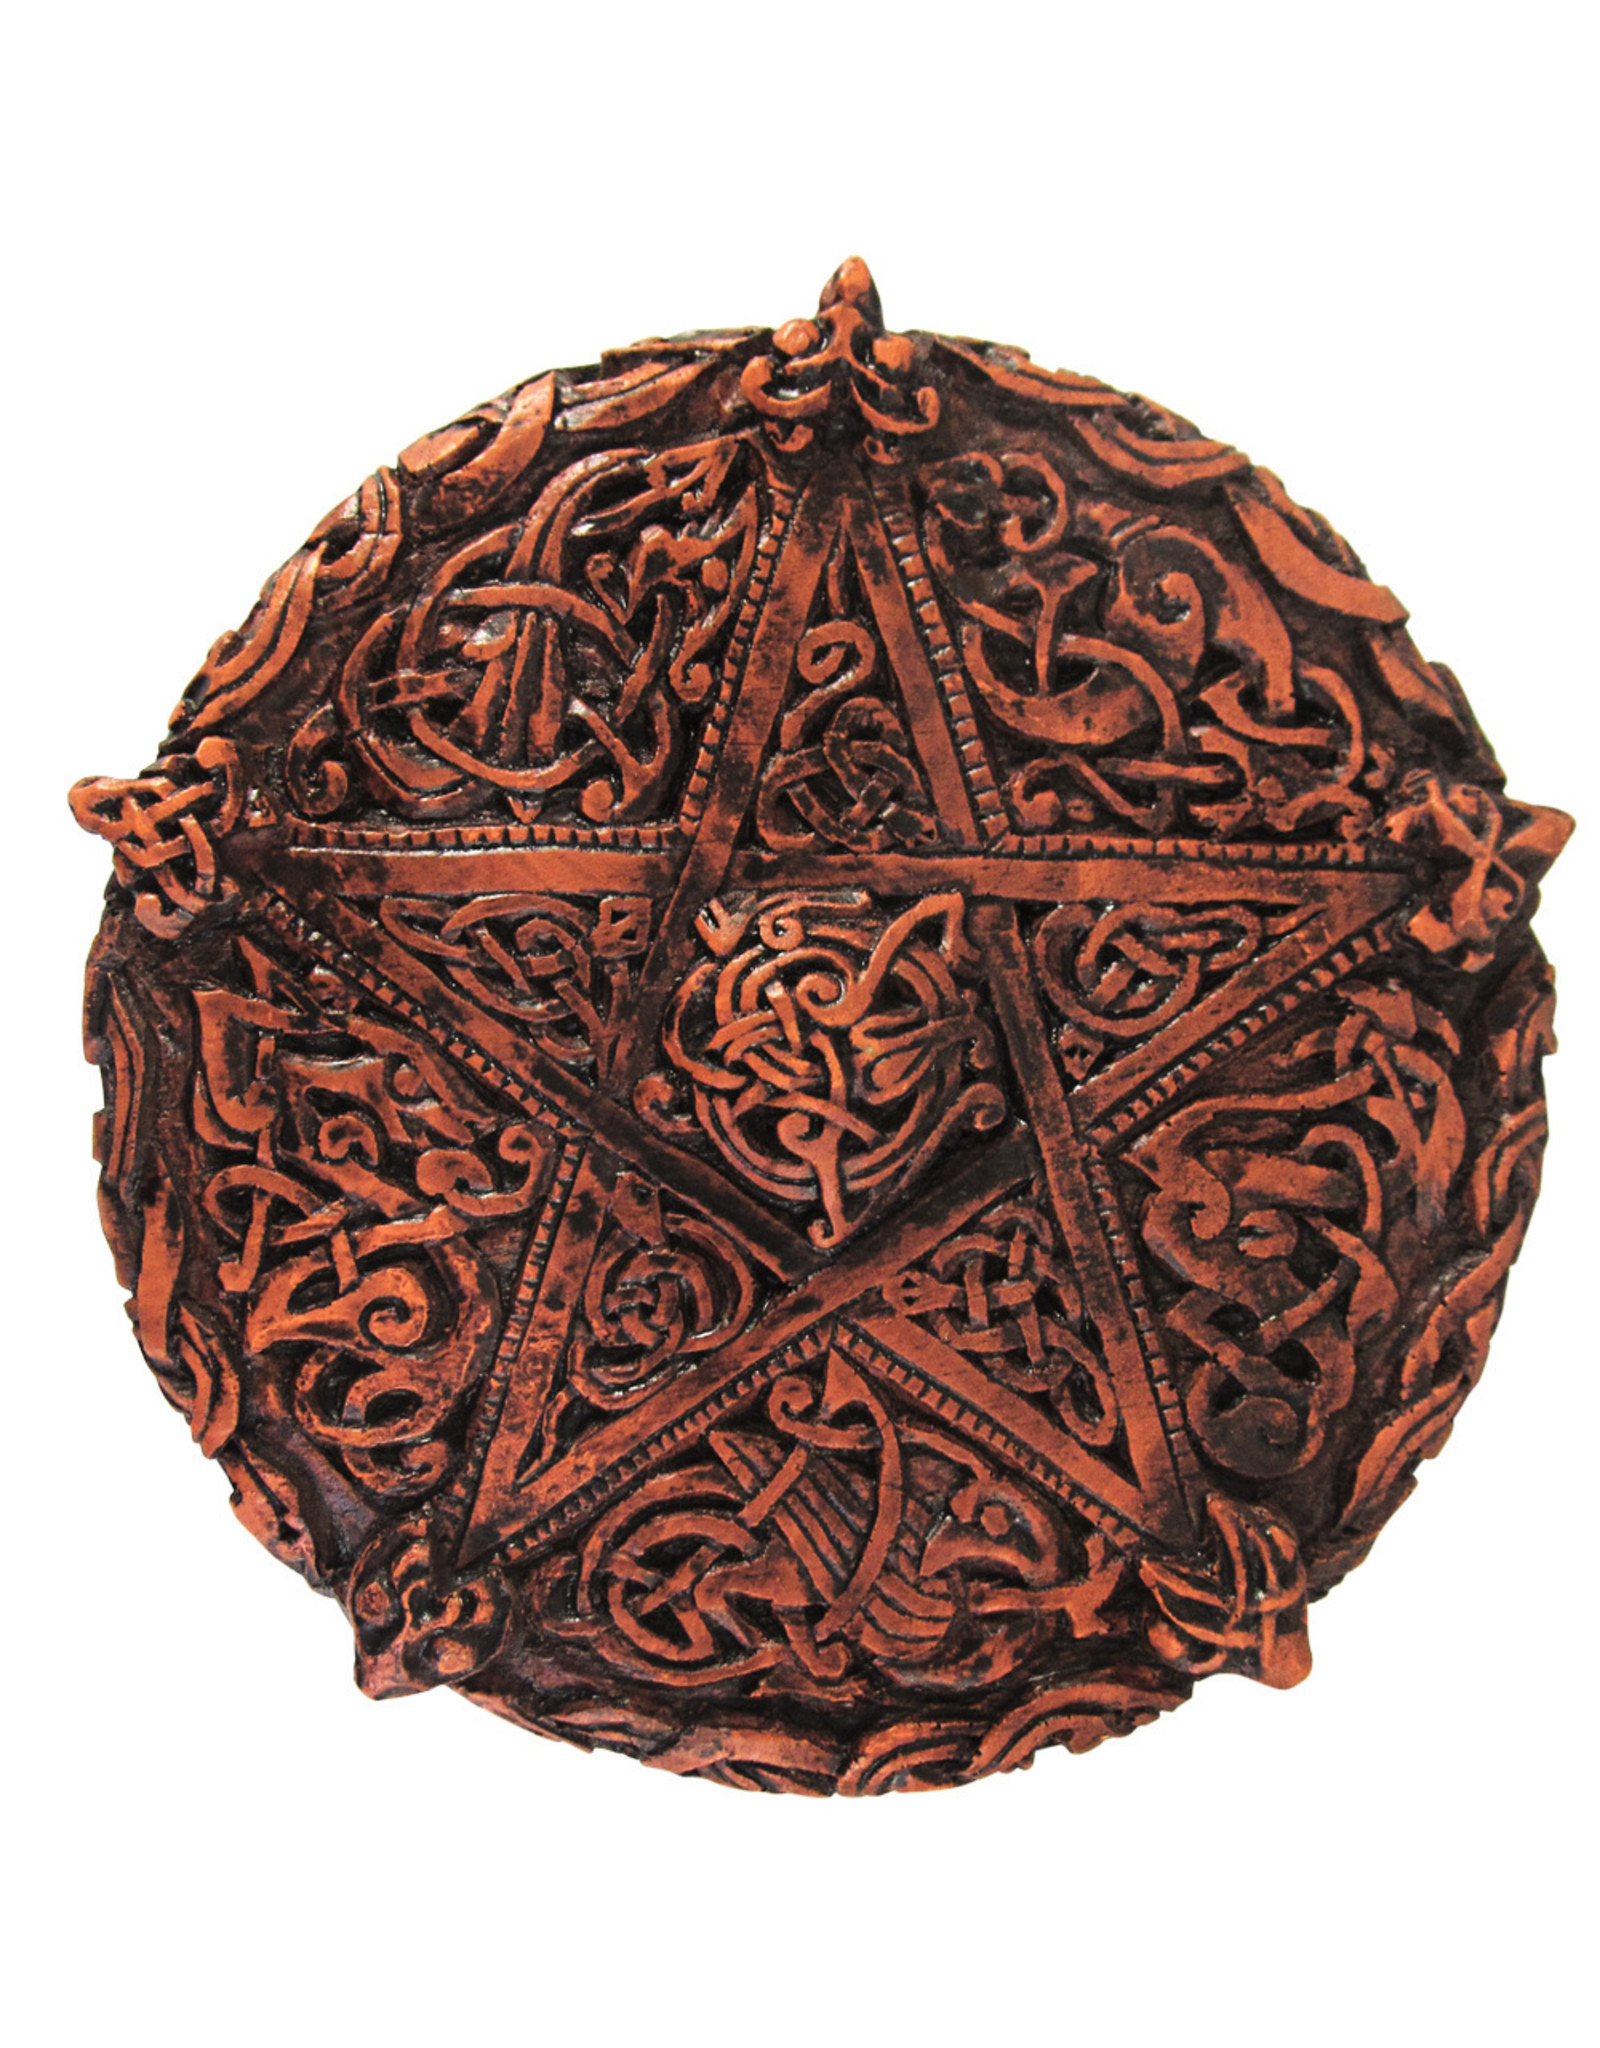 Small Knotwork Pentacle Plaque in Wood Finish